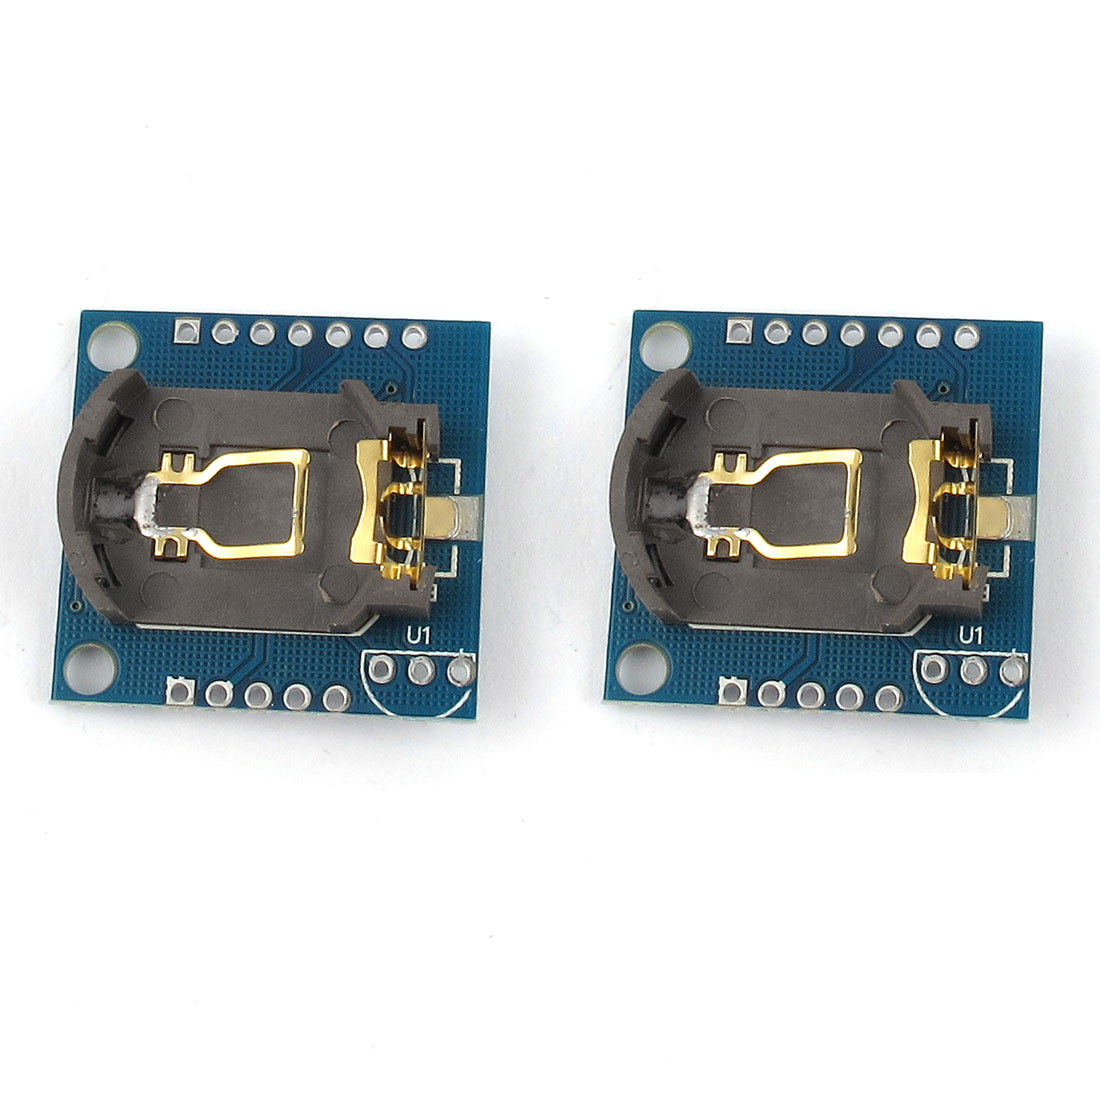 2PCS I2C RTC DS1307 AT24C32 Real Time Clock Module For Arduino AVR ARM PIC SMD